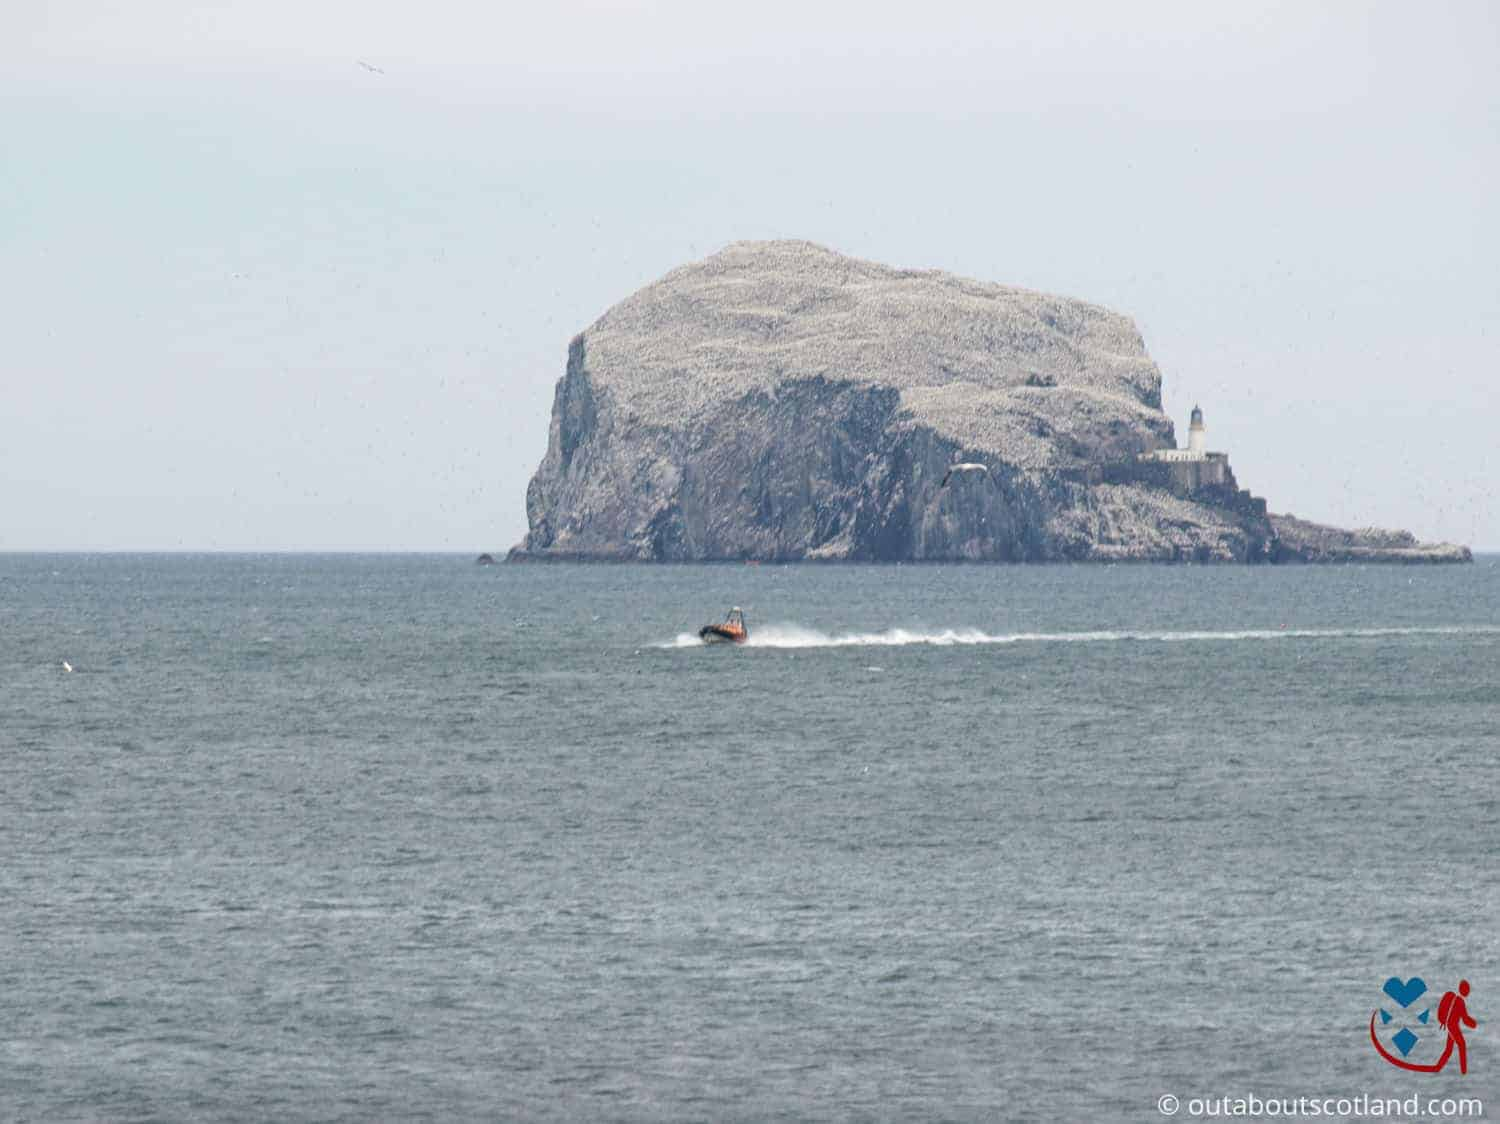 Bass Rock Boat Tour (1 of 5)